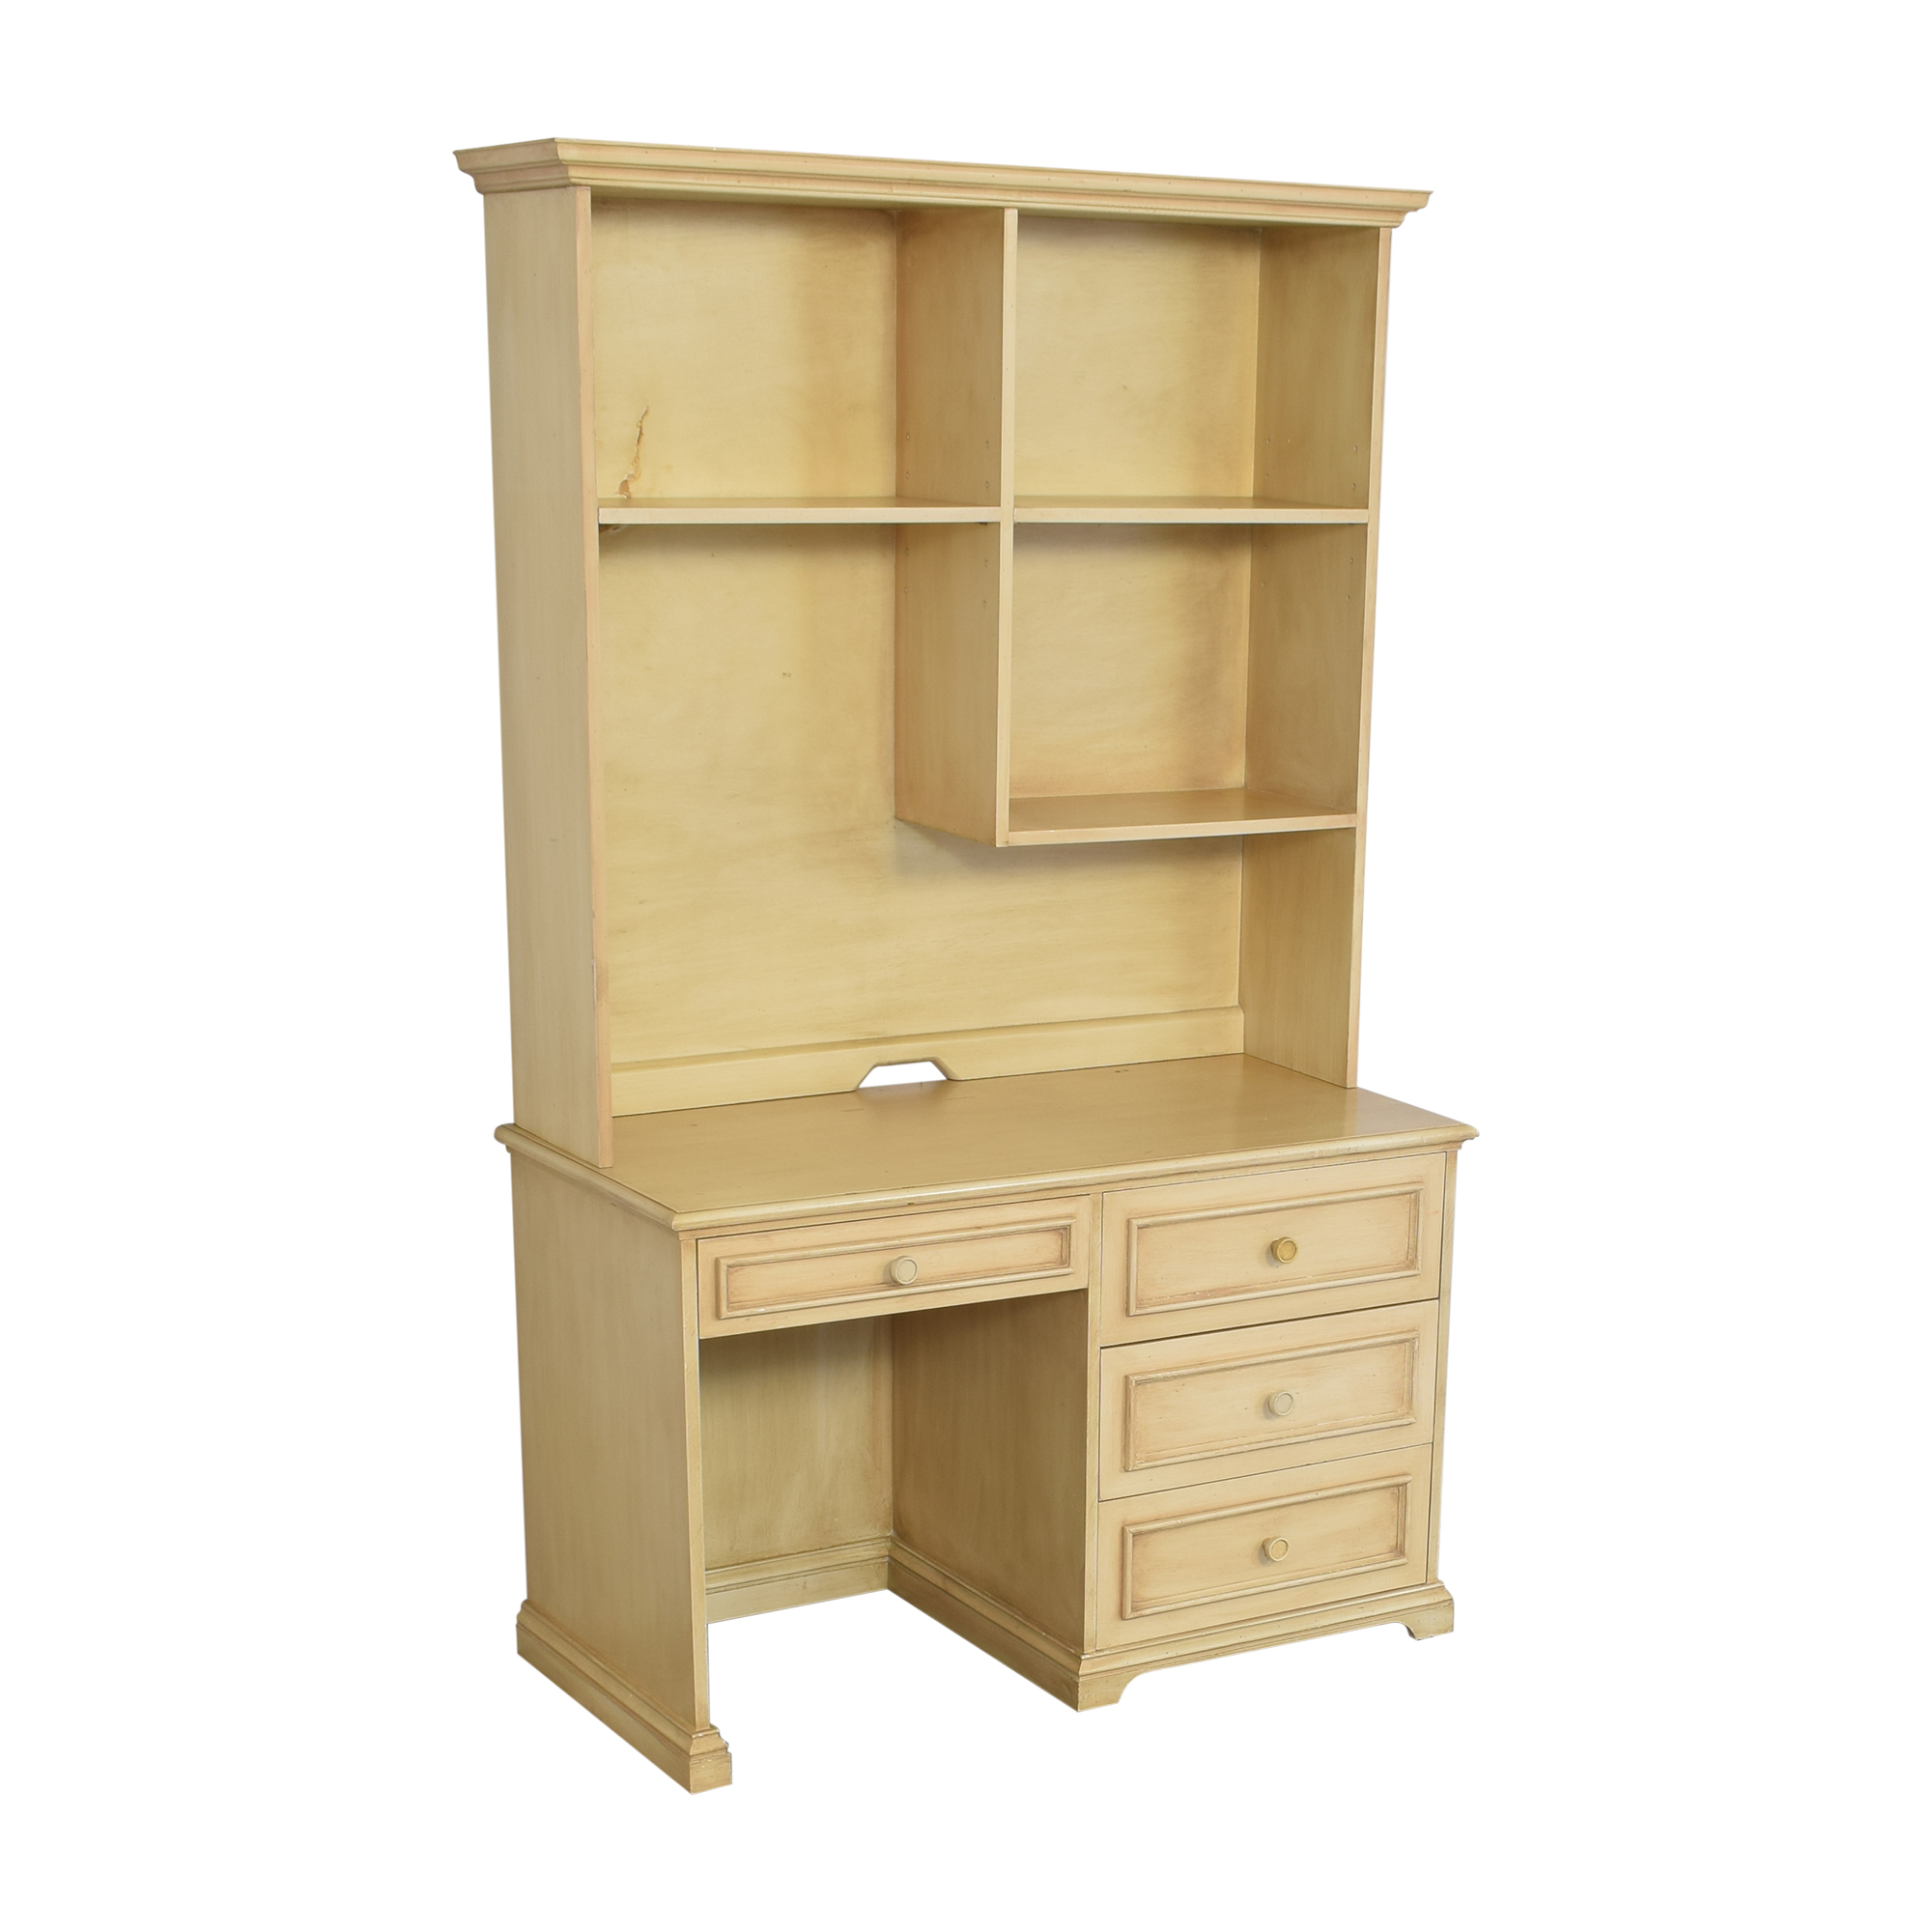 Just Kids Desk with Hutch ma